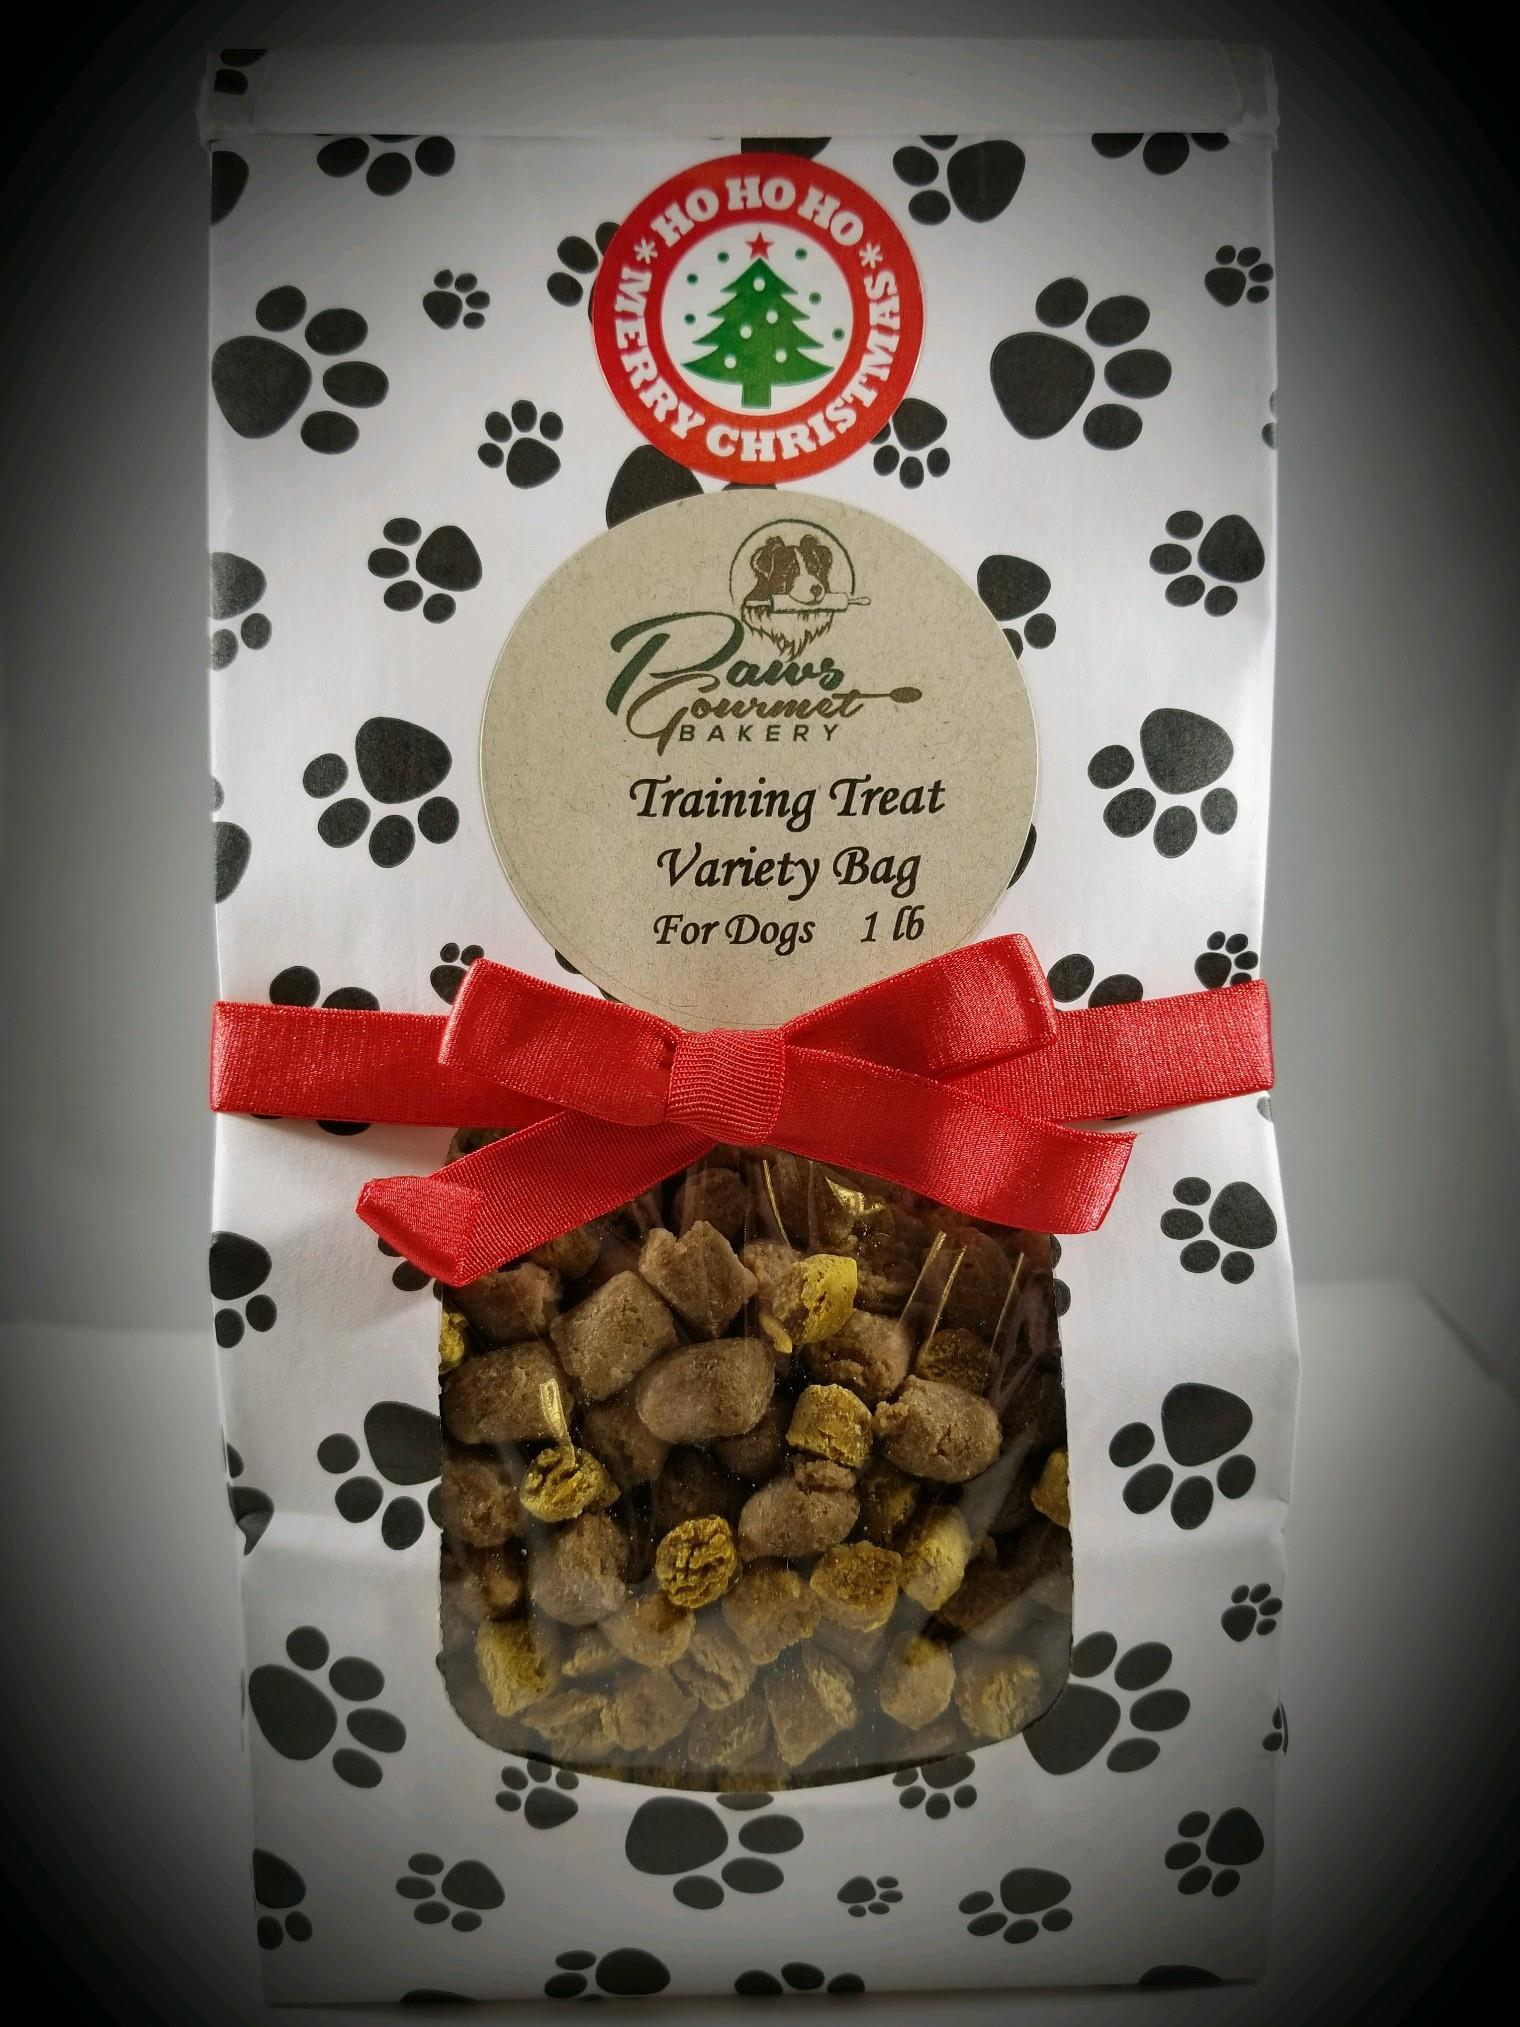 Sampler Gift Bag - Training Treat Variety